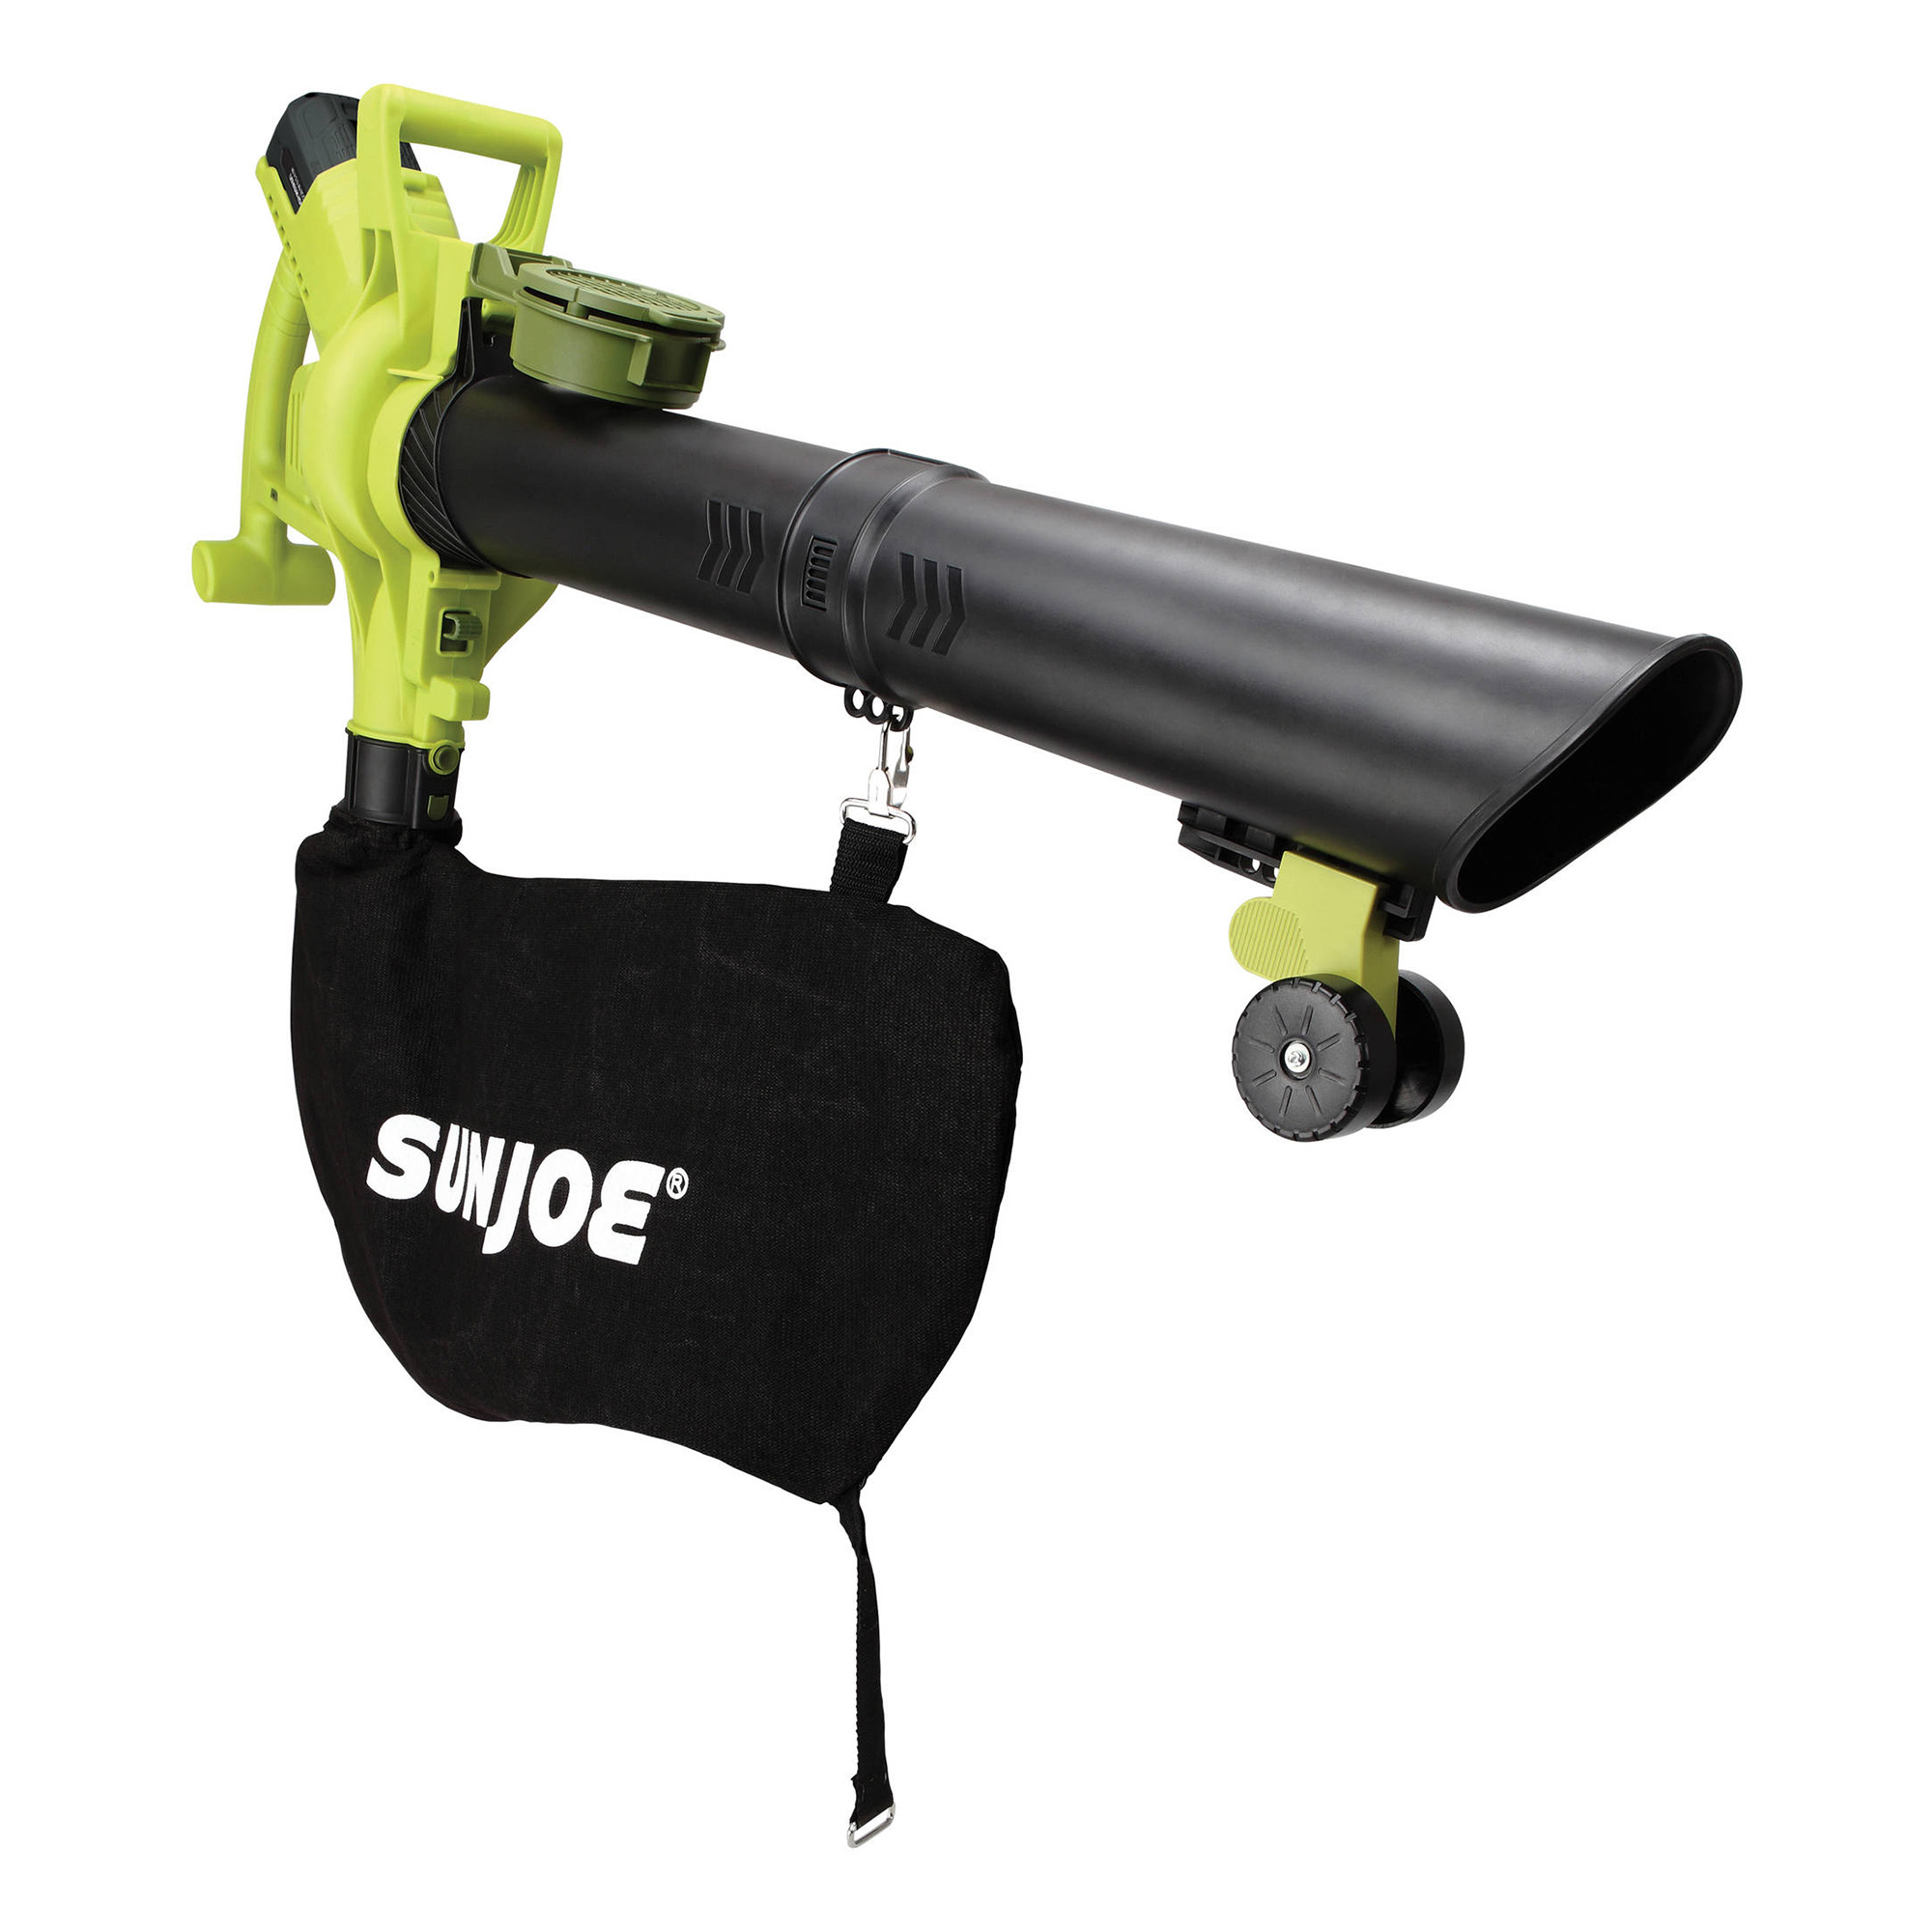 Sun Joe IONBV-XR 40V 5.0 Ah Cordless Lithium-Ion 3-in-1 Blower Kit